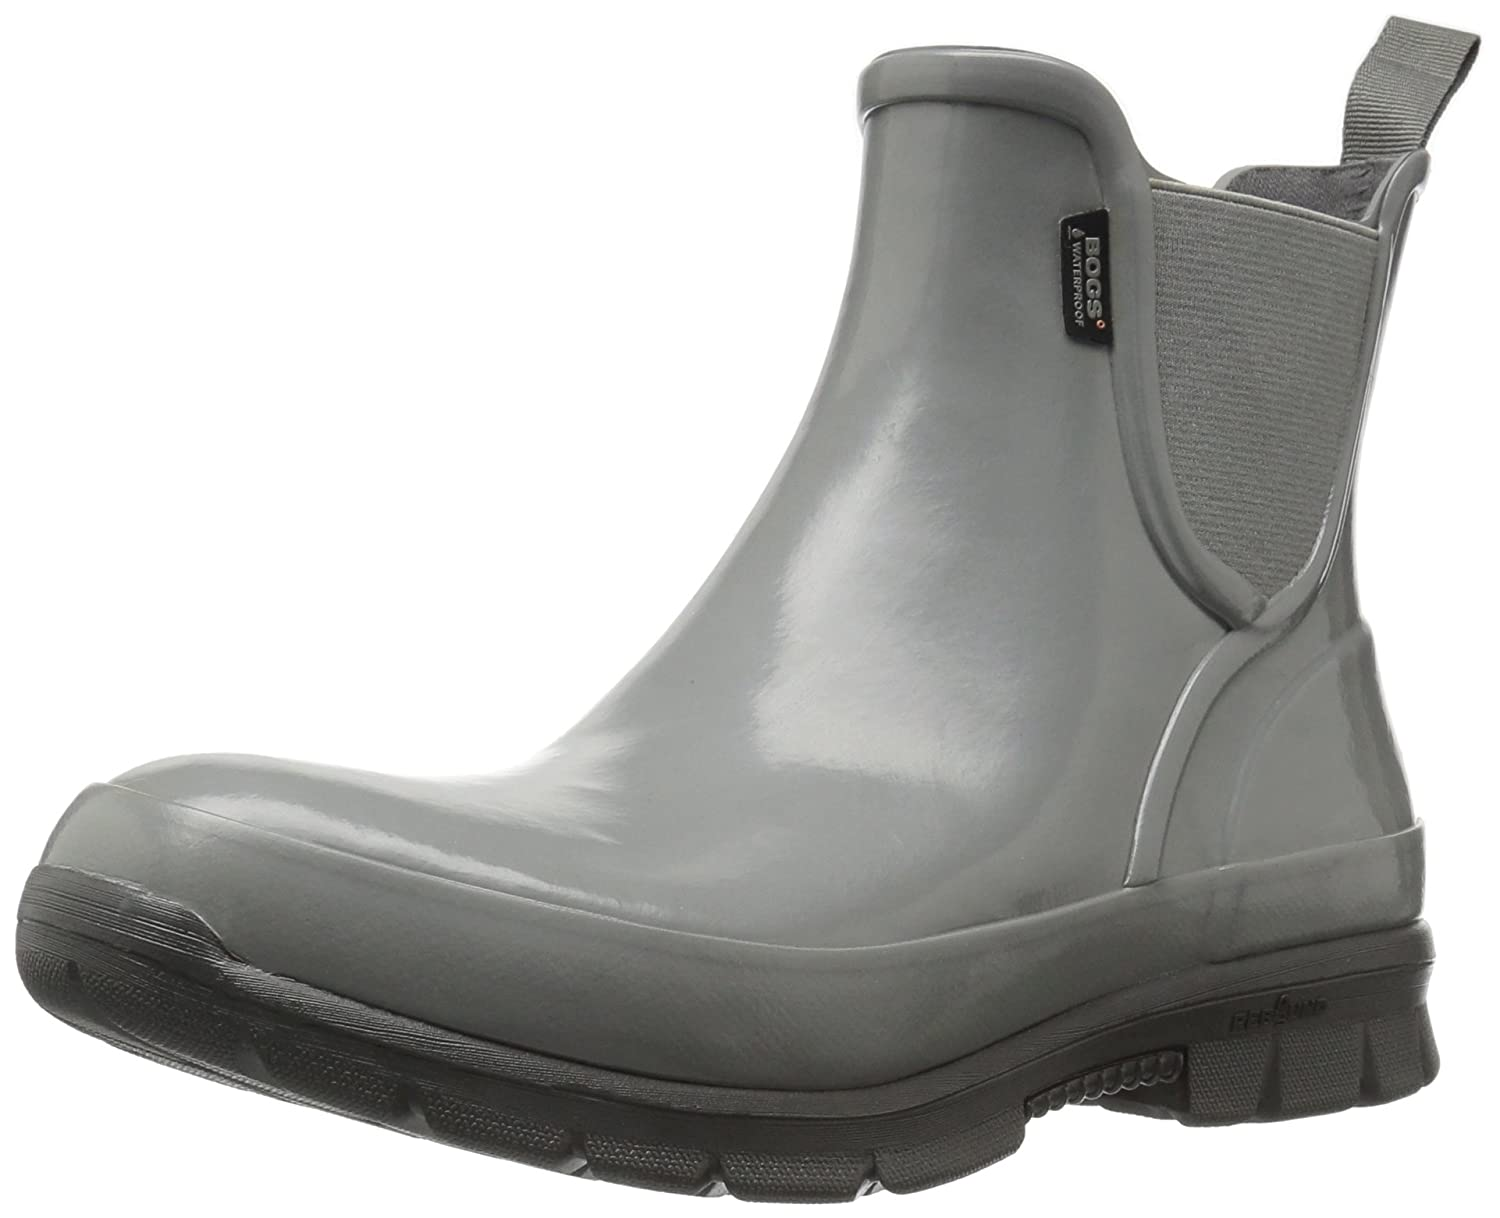 Bogs Women's Amanda Slip on Solid Rain Boot B01J6SQ3HU 7 B(M) US|Gray